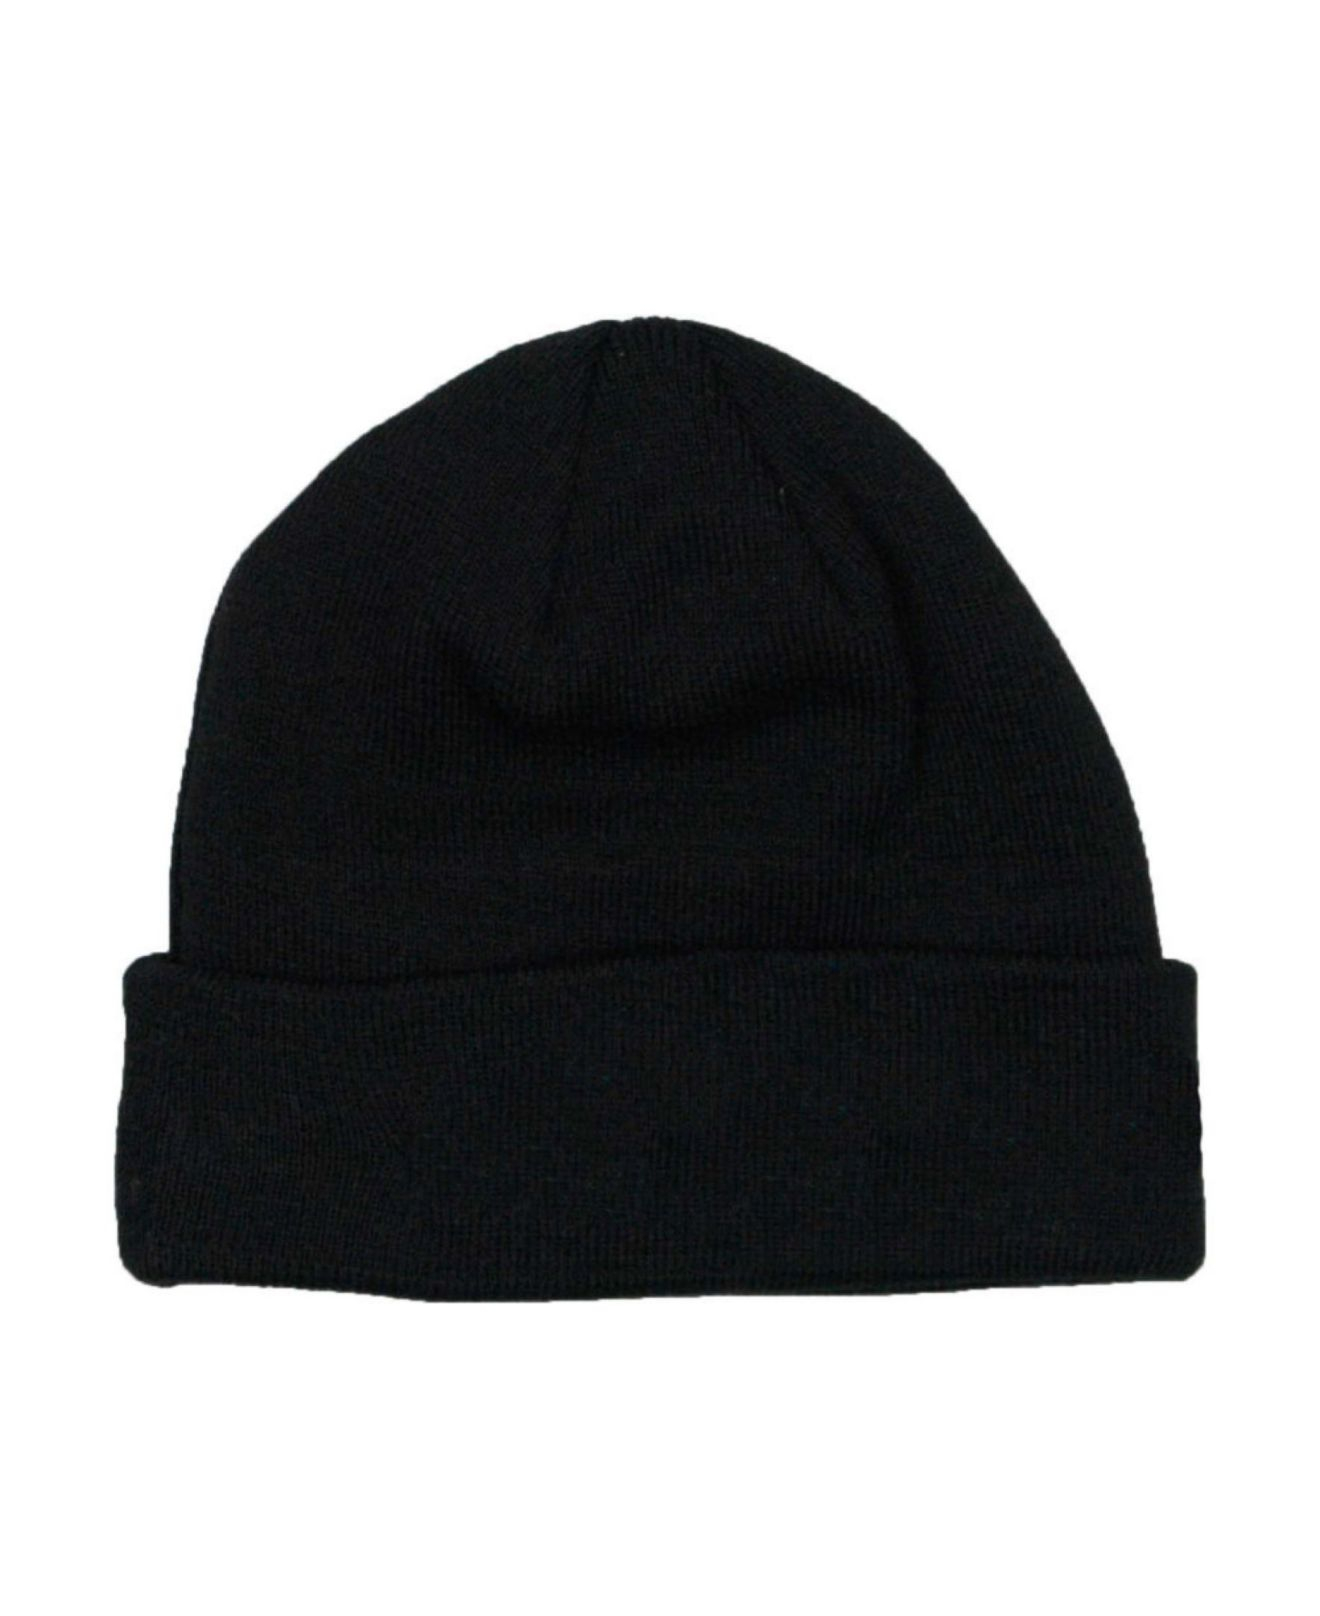 ... coupon code for lyst ktz carolina panthers basic cuff knit hat in black  for men 91456 3dbcd4206